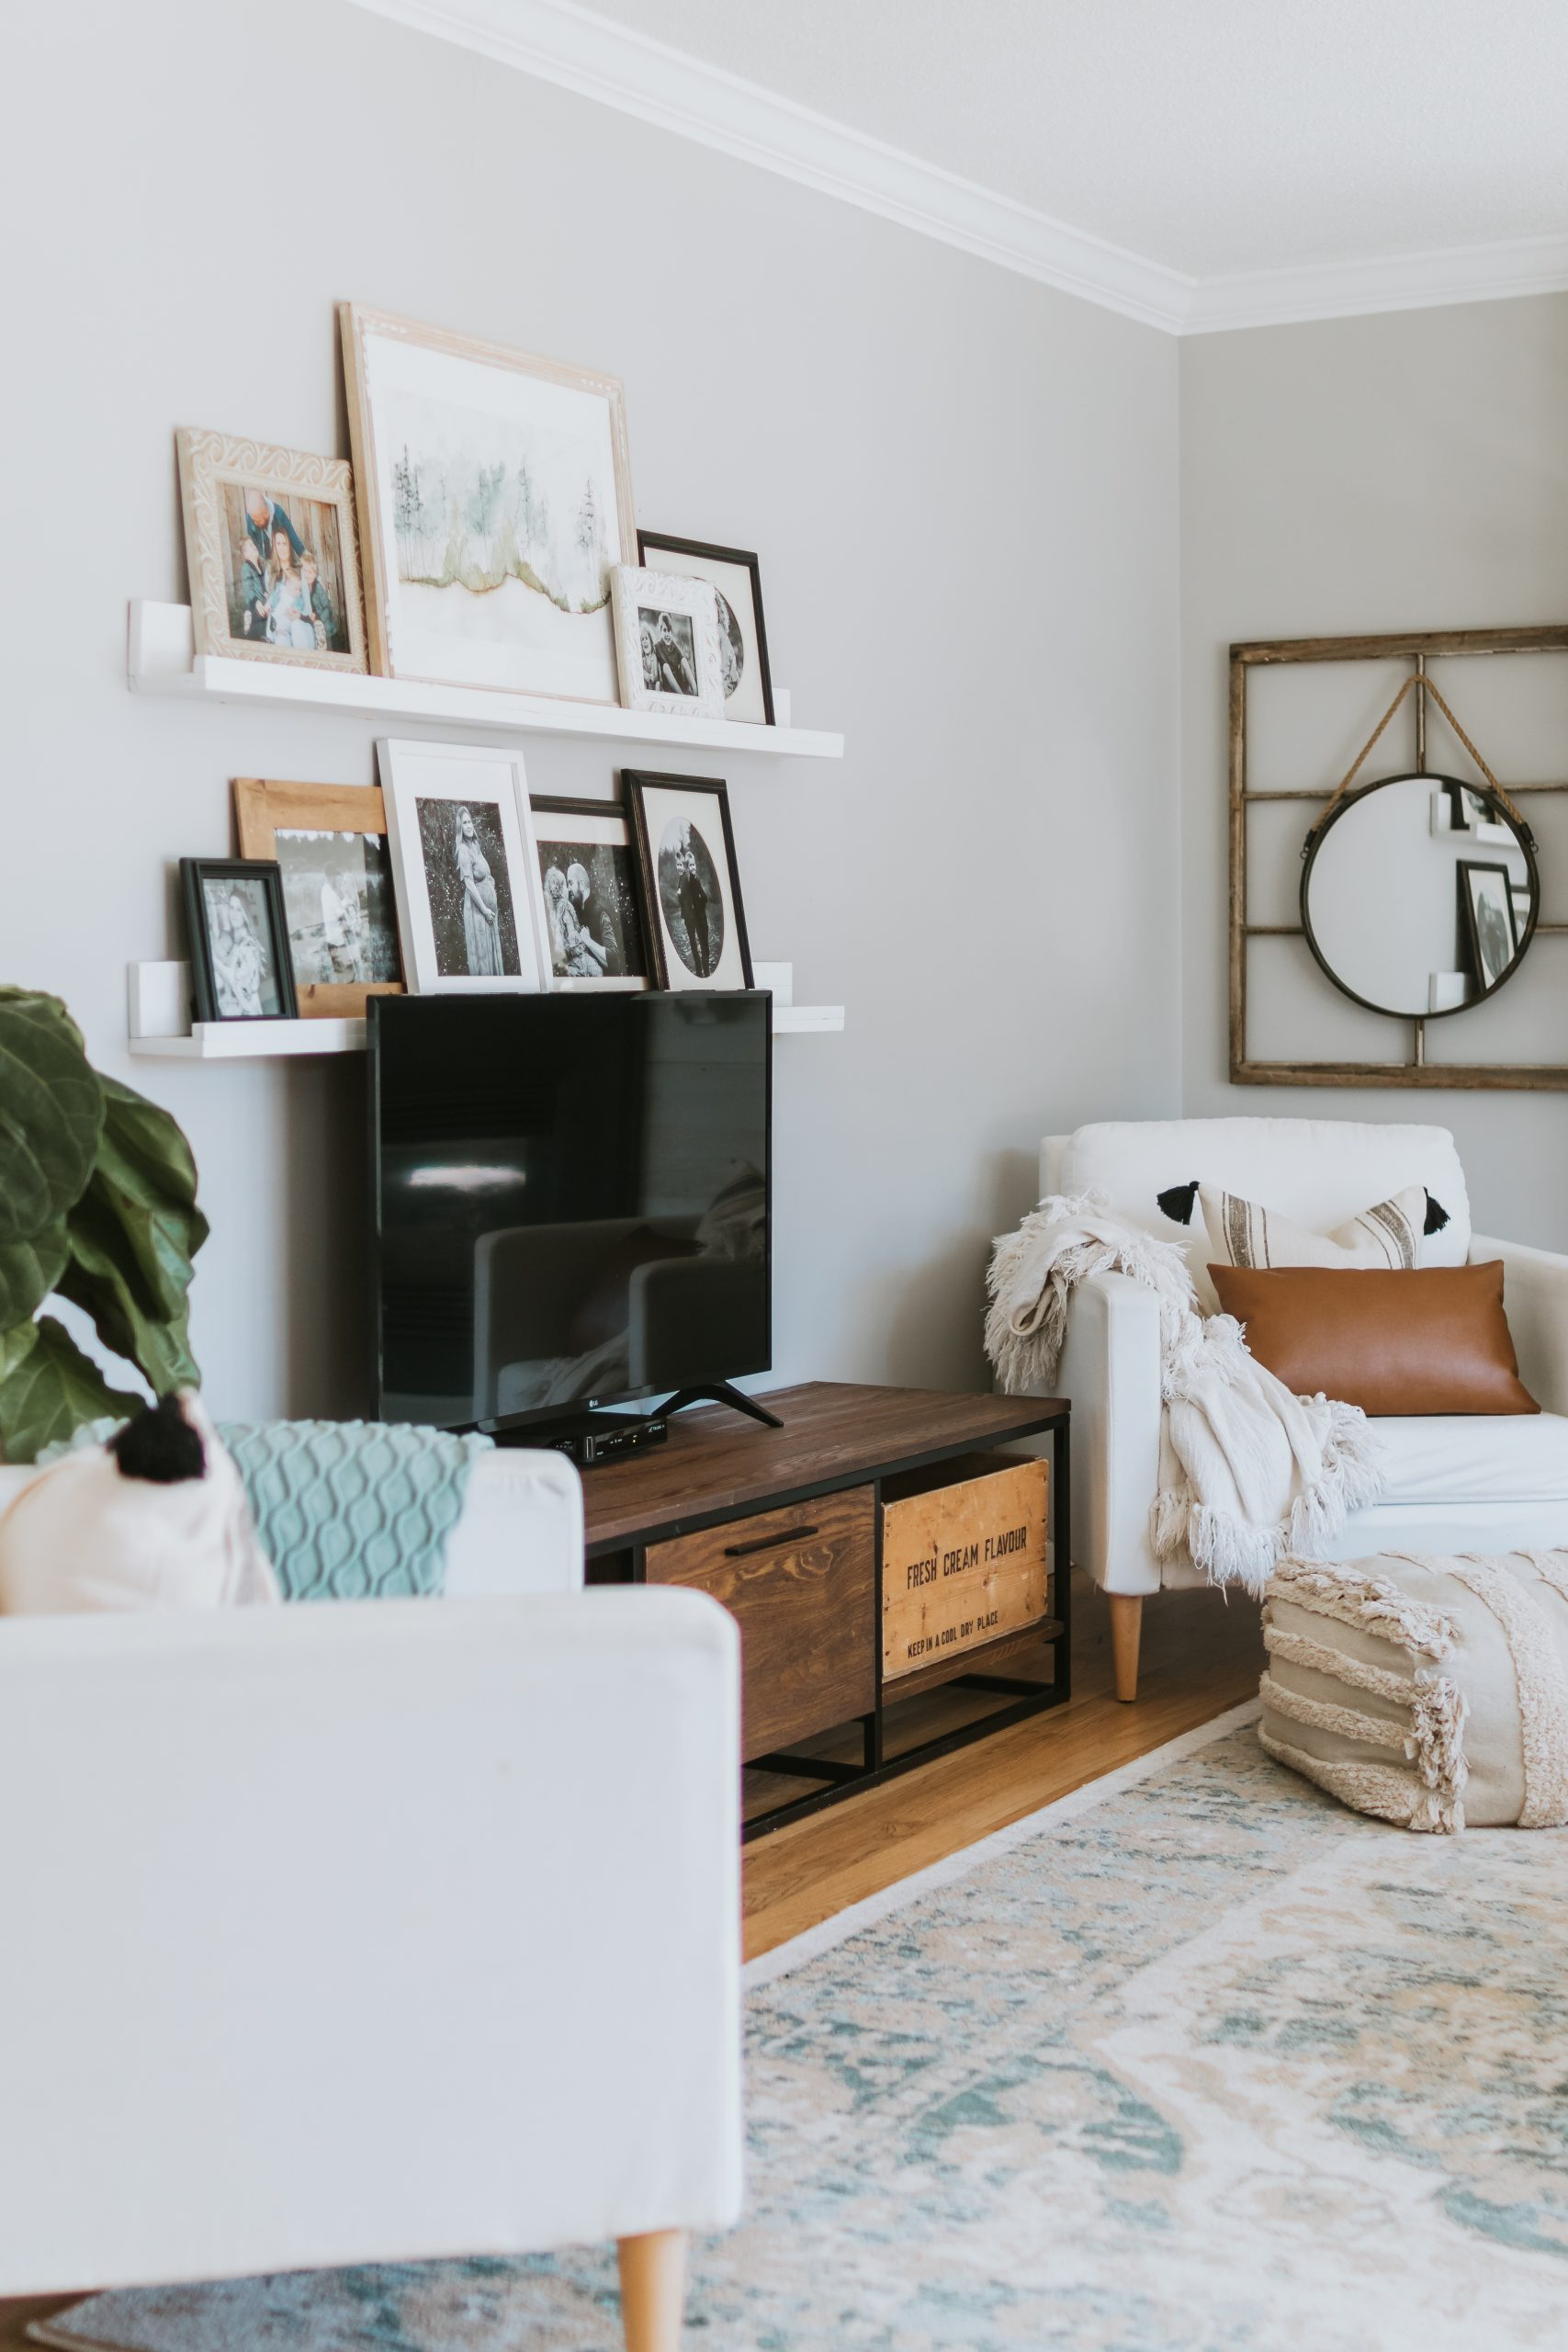 The Many Looks Of One Living Room. The Seven different rugs we've had in our modern farmhouse living room and why we loved each one.